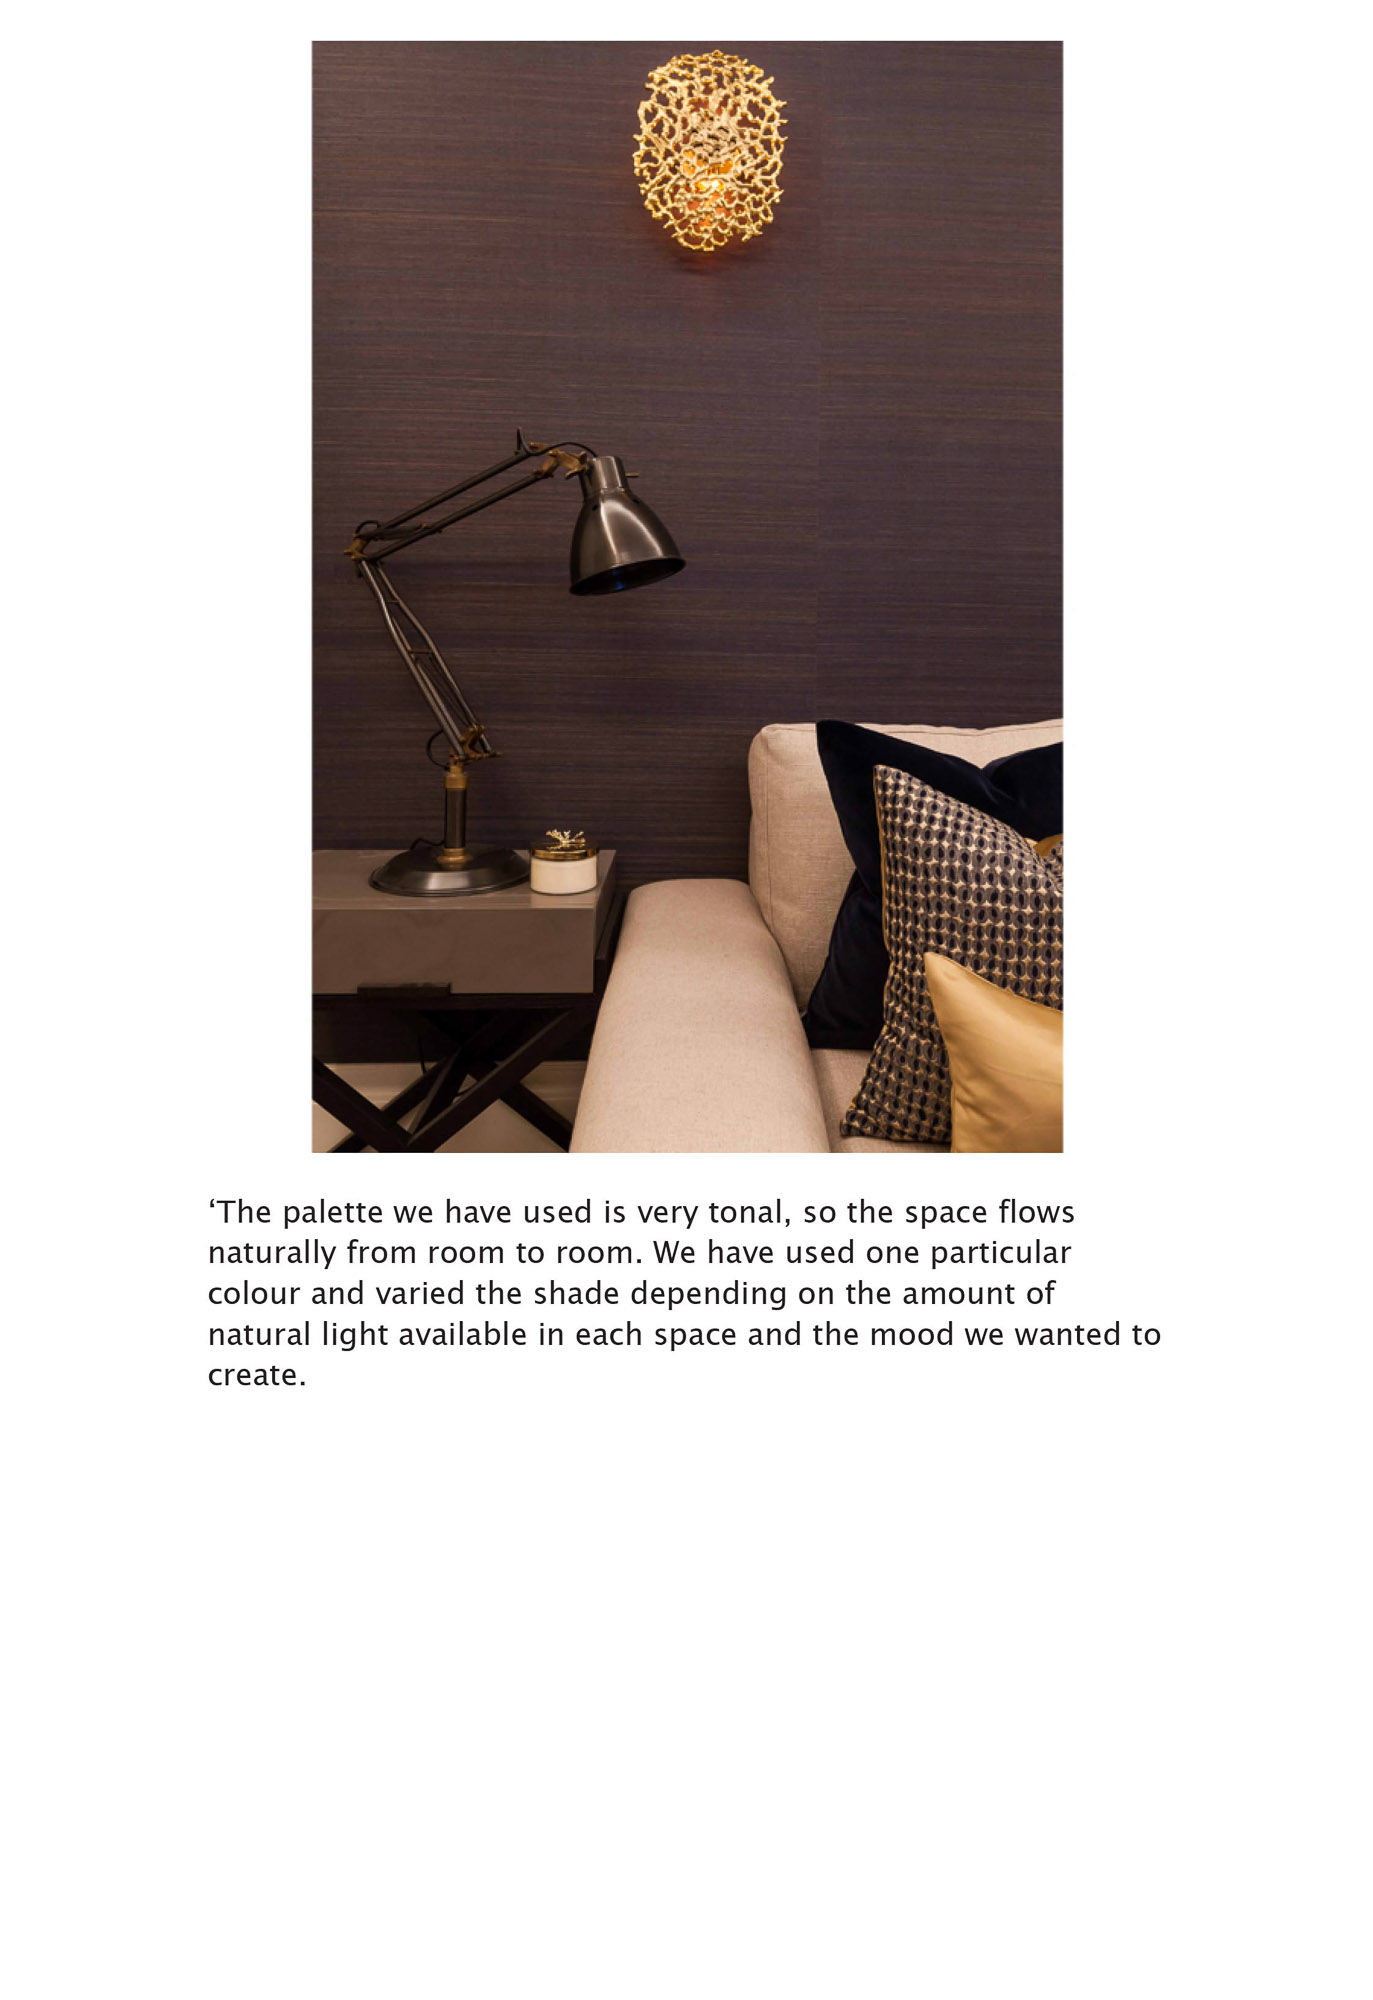 achica-living-chelsea-townhouse-by-designer-susie-rumbold-01-03-5-2